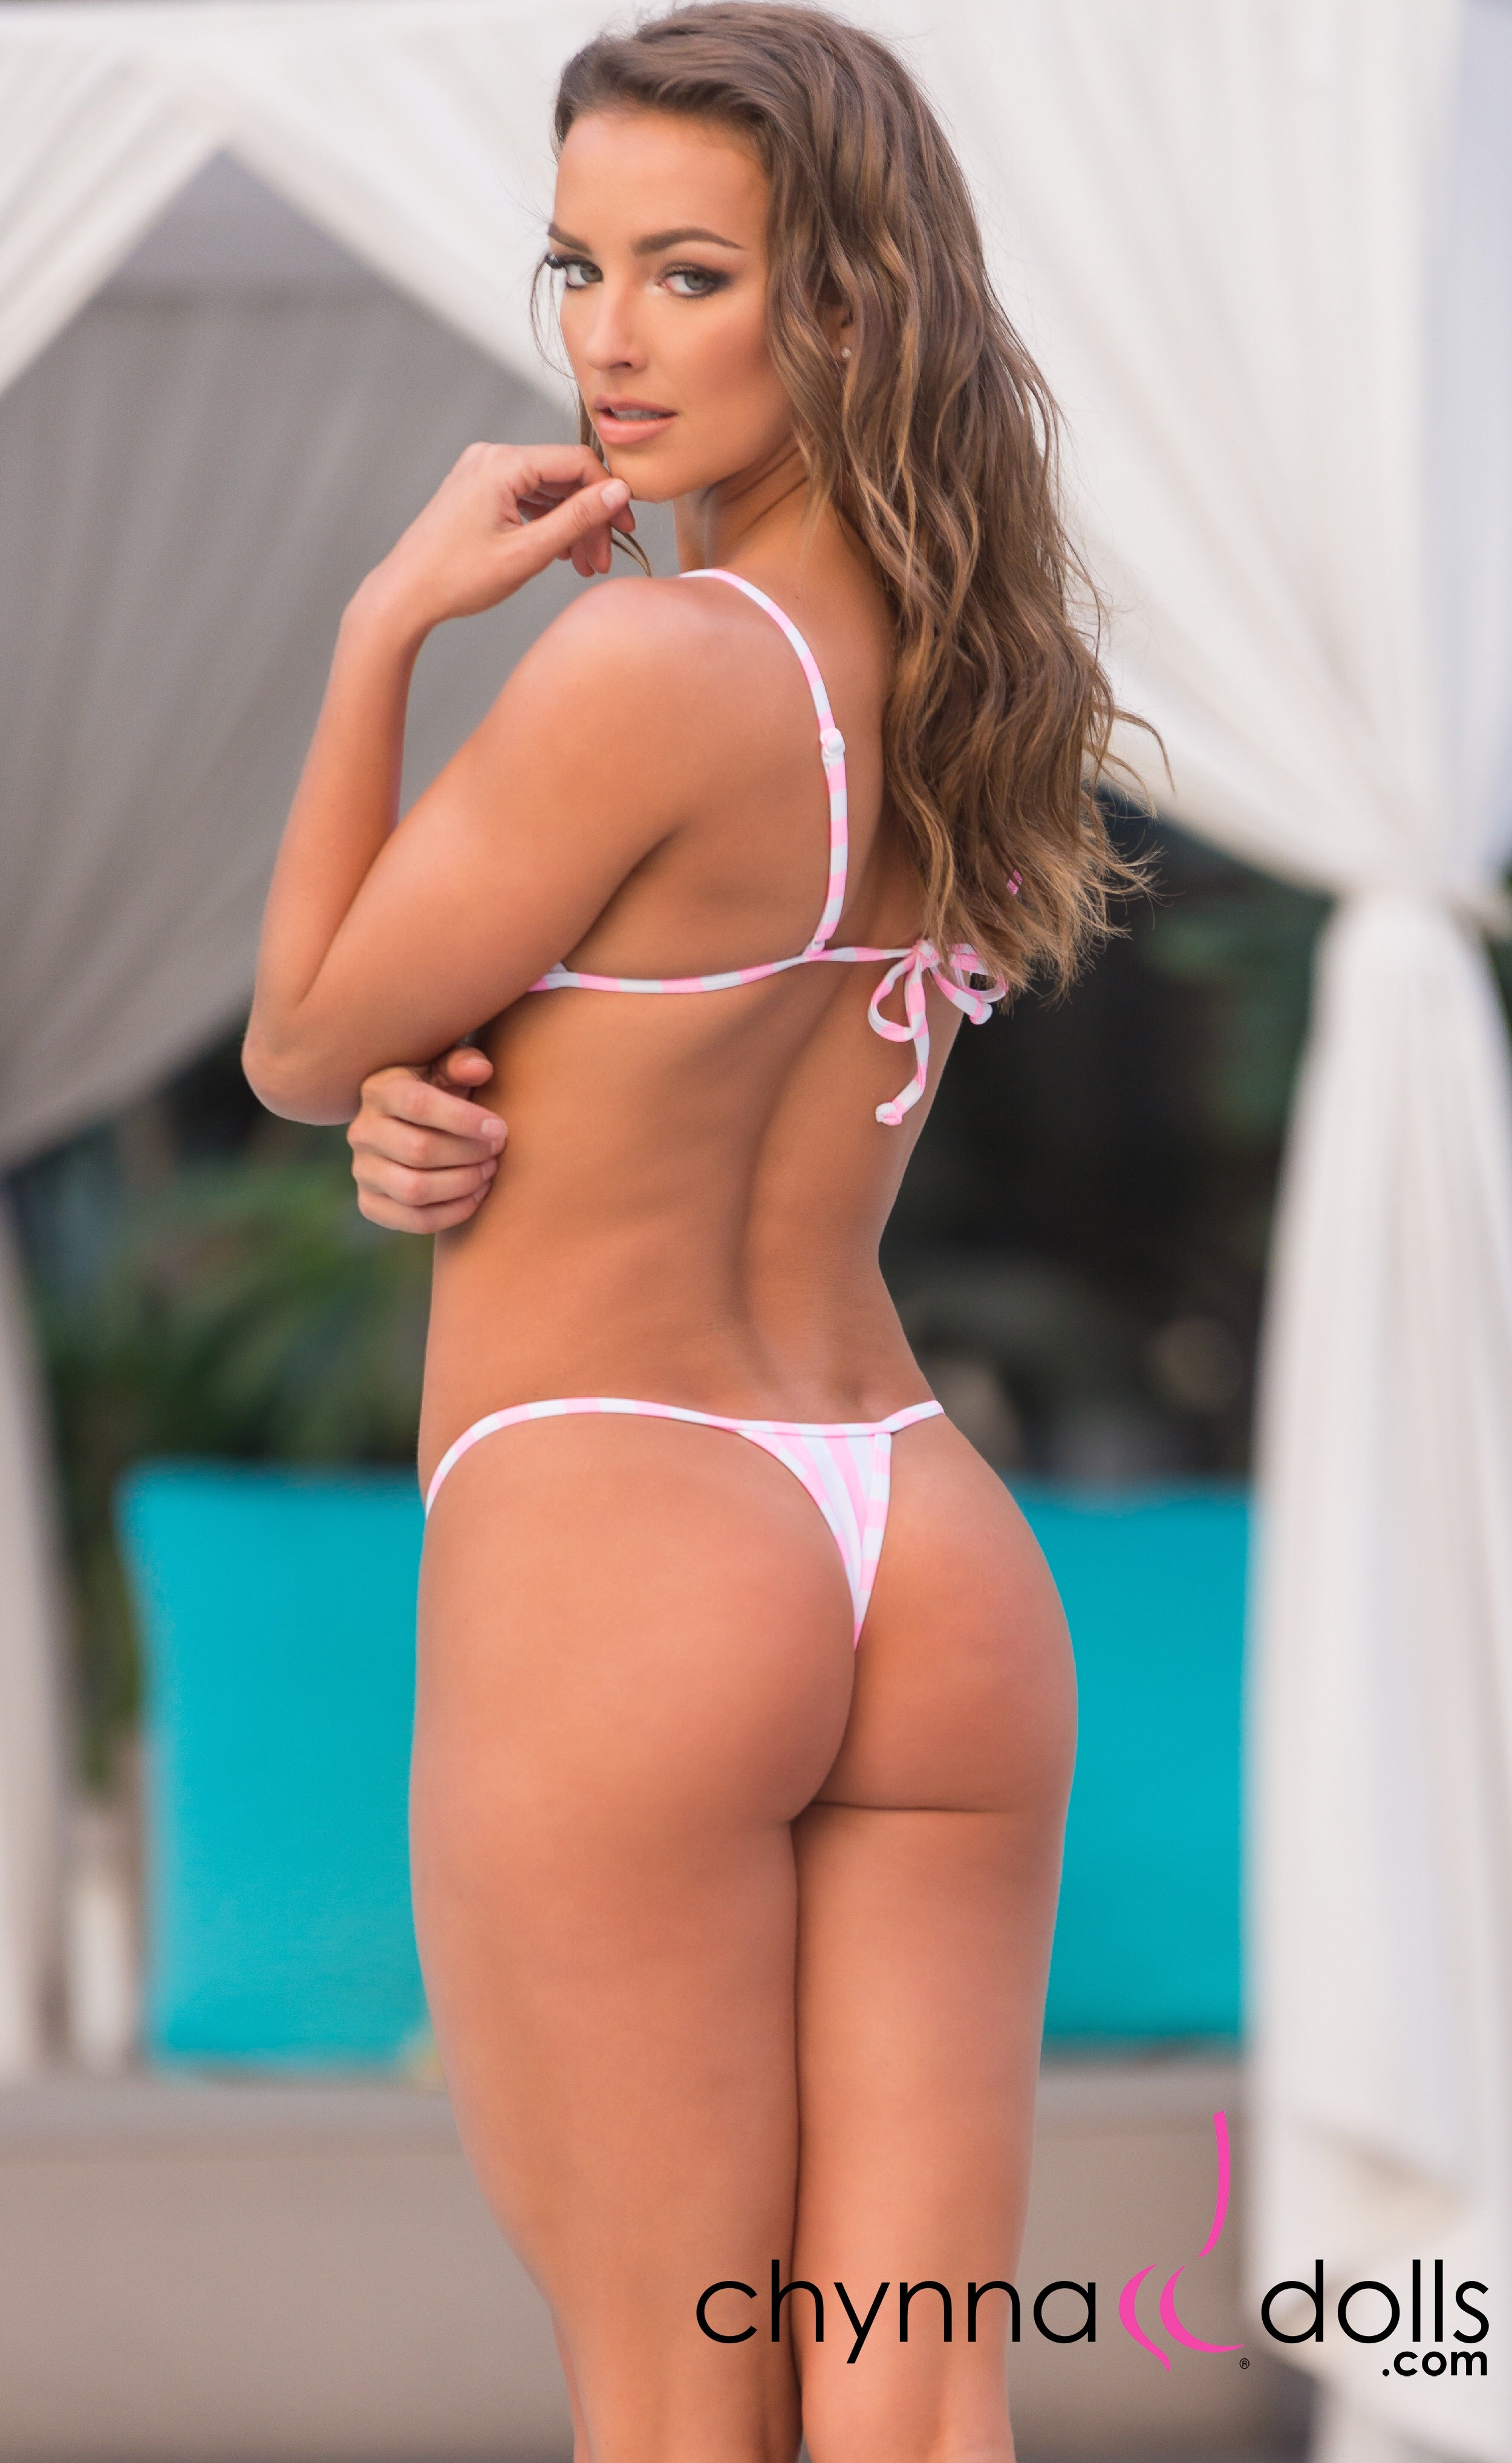 White RioT Stripes Pink Back Thong And Swimsuit In vgYbf76y